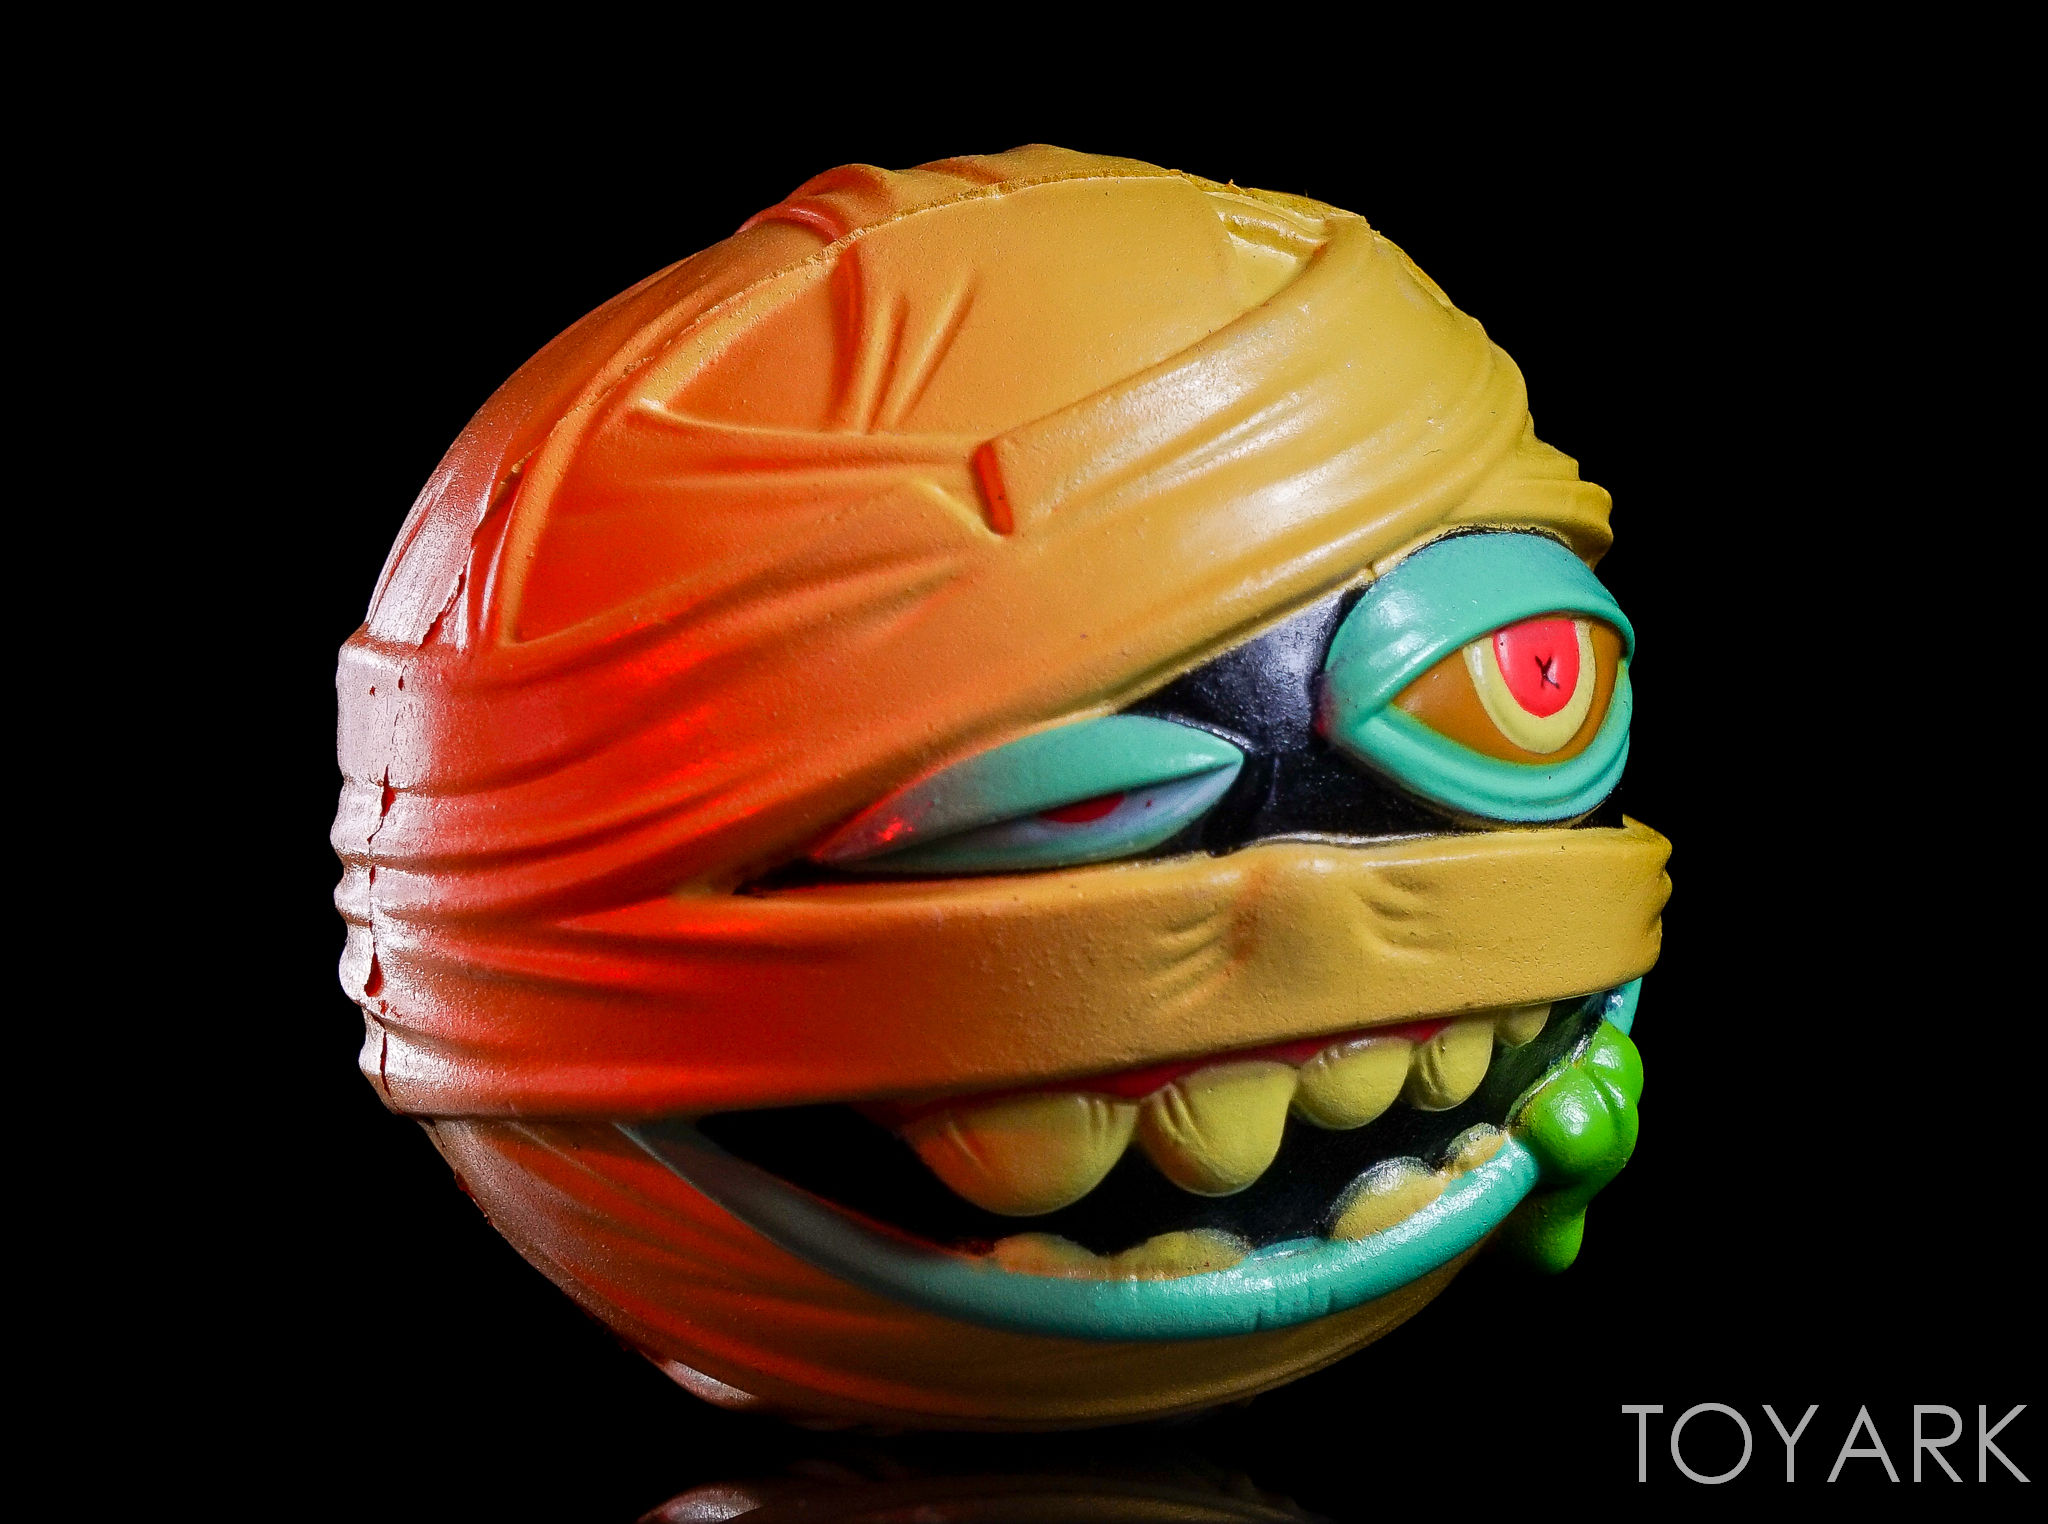 http://news.toyark.com/wp-content/uploads/sites/4/2017/01/Just-Play-Series-1-Madballs-044.jpg